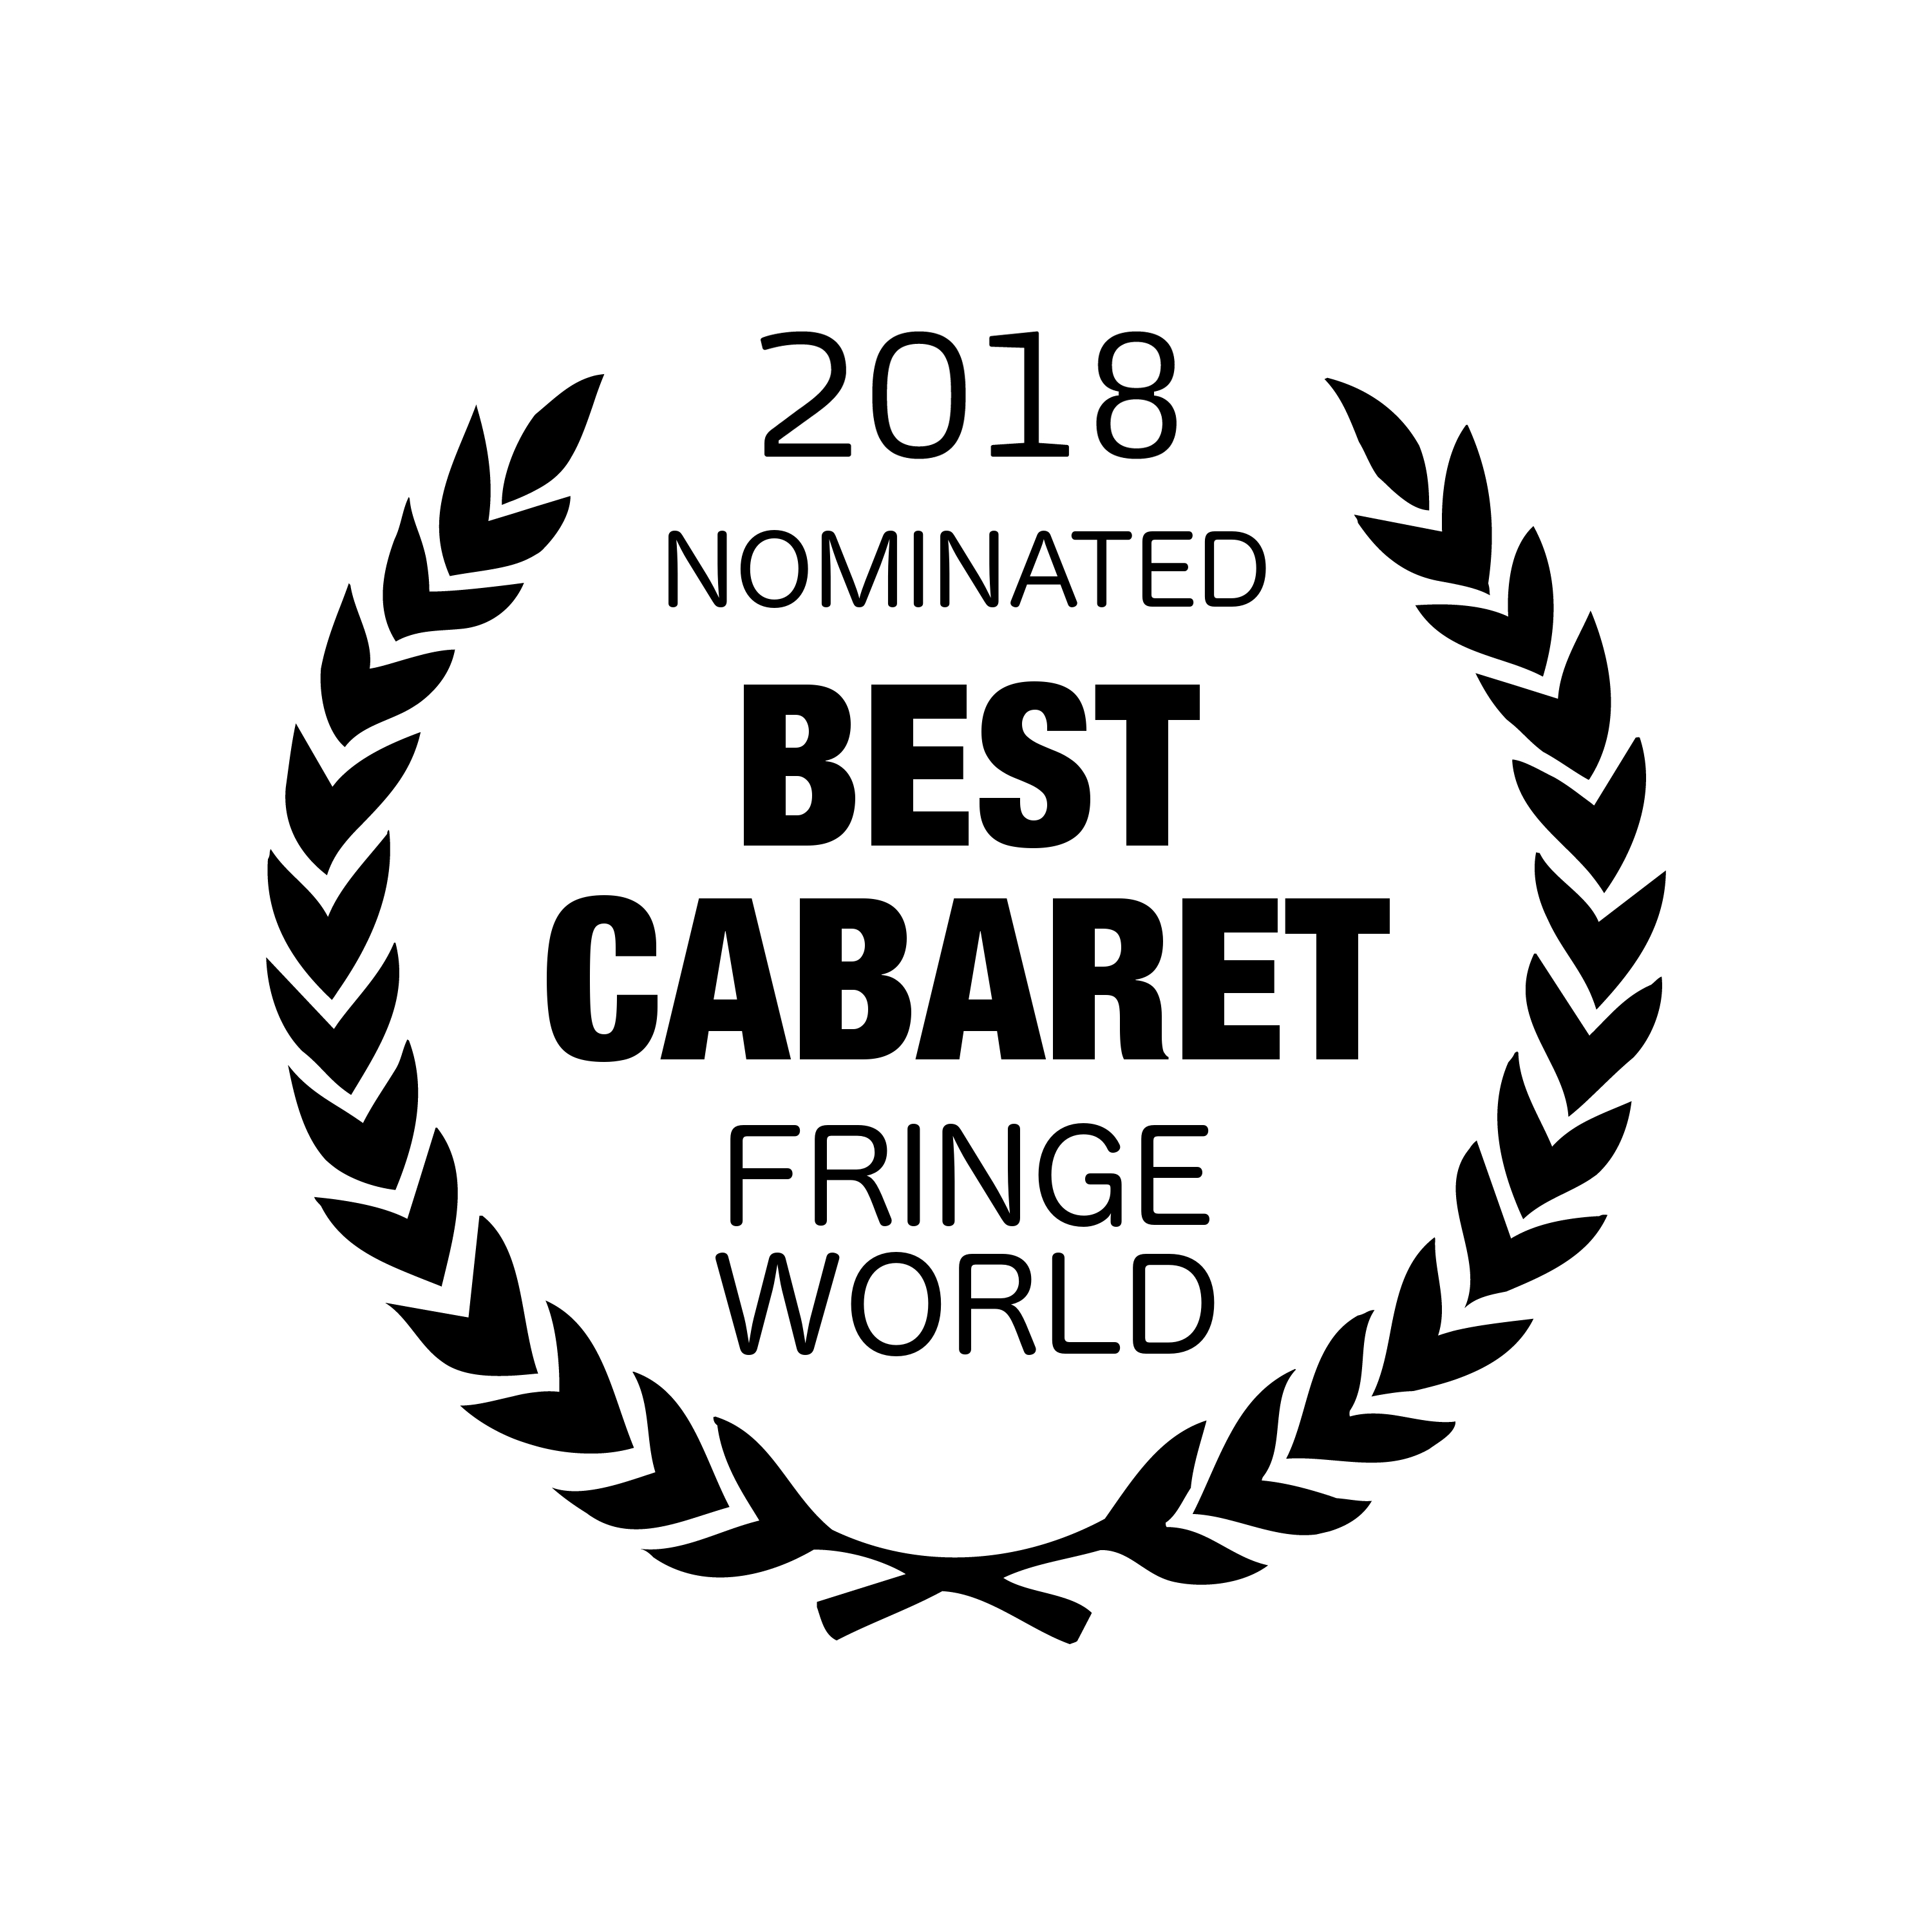 Fringe World Best Cabaret Nominated Laur